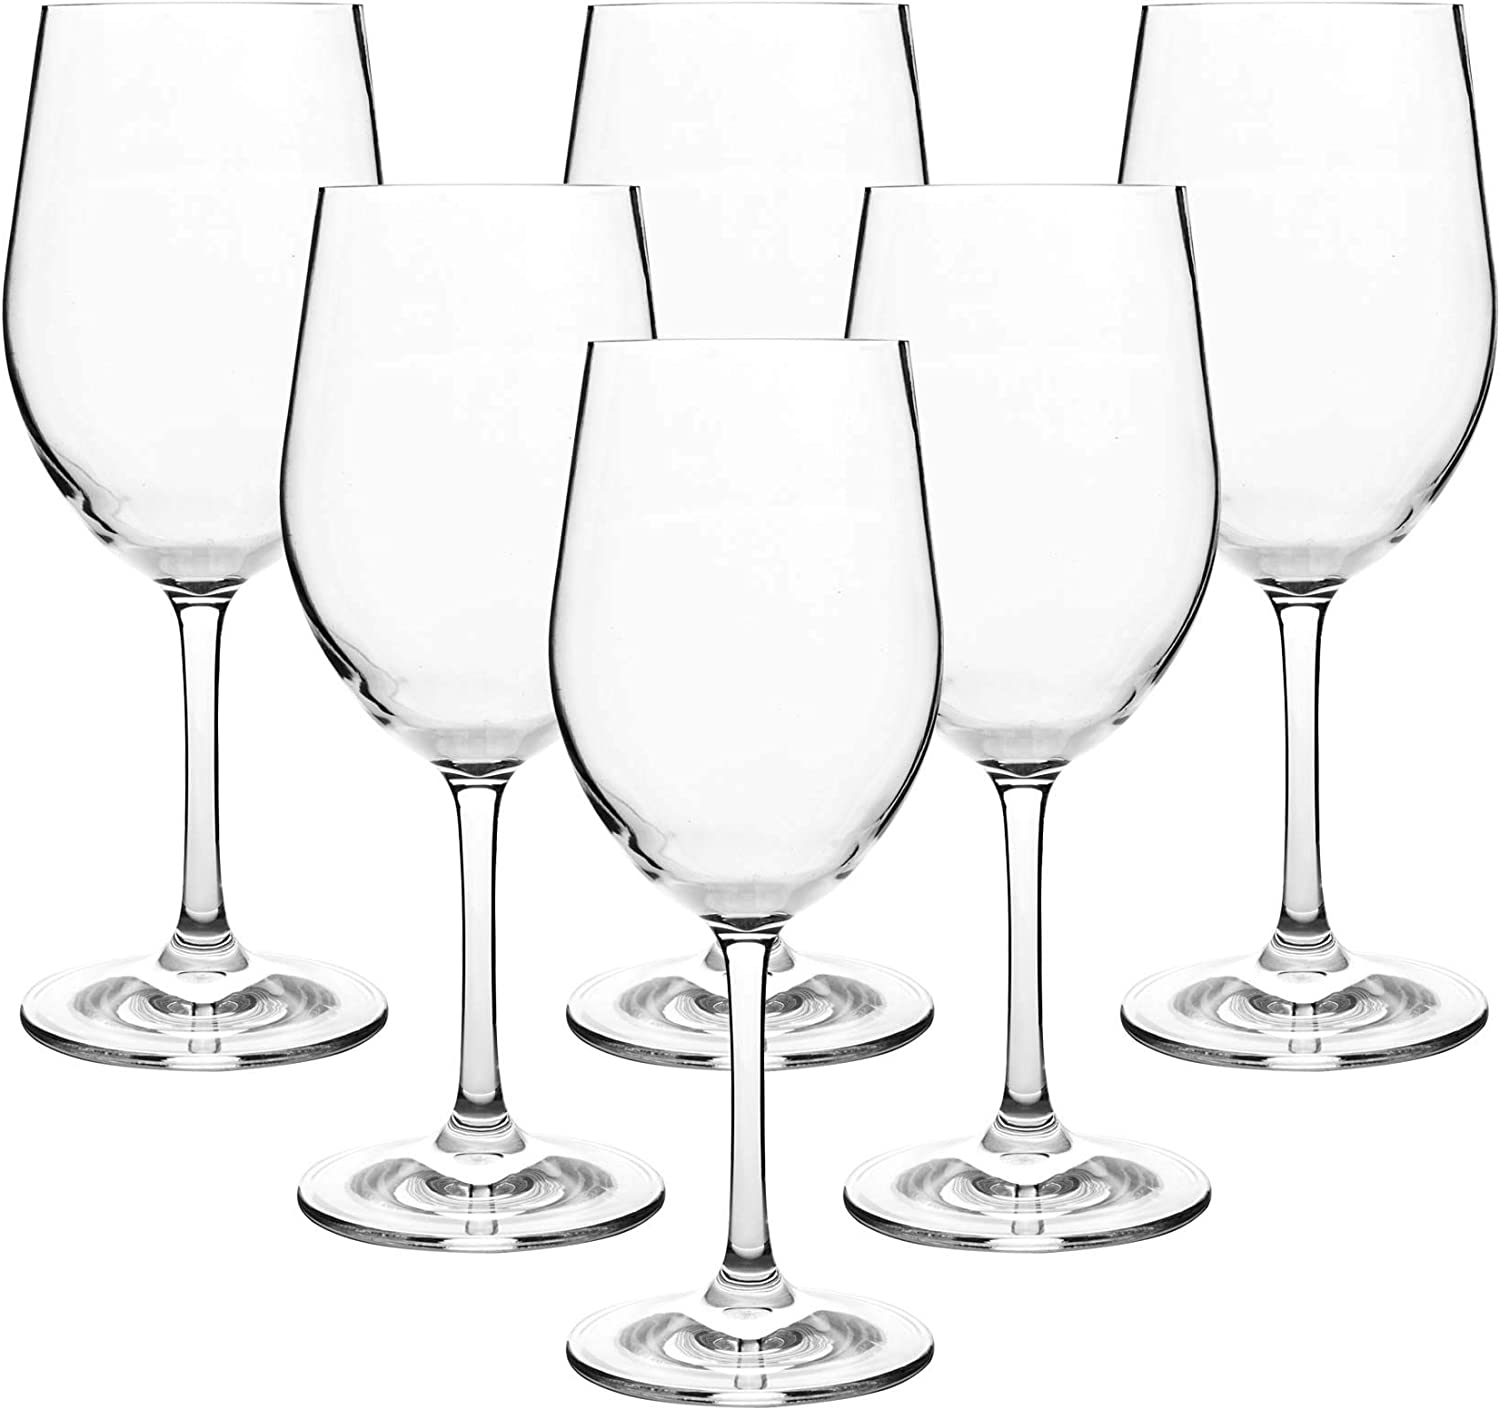 12-ounce Unbreakable Wine Boston Mall Glasses-Acrylic Plastic Stem 2021 autumn and winter new Glas